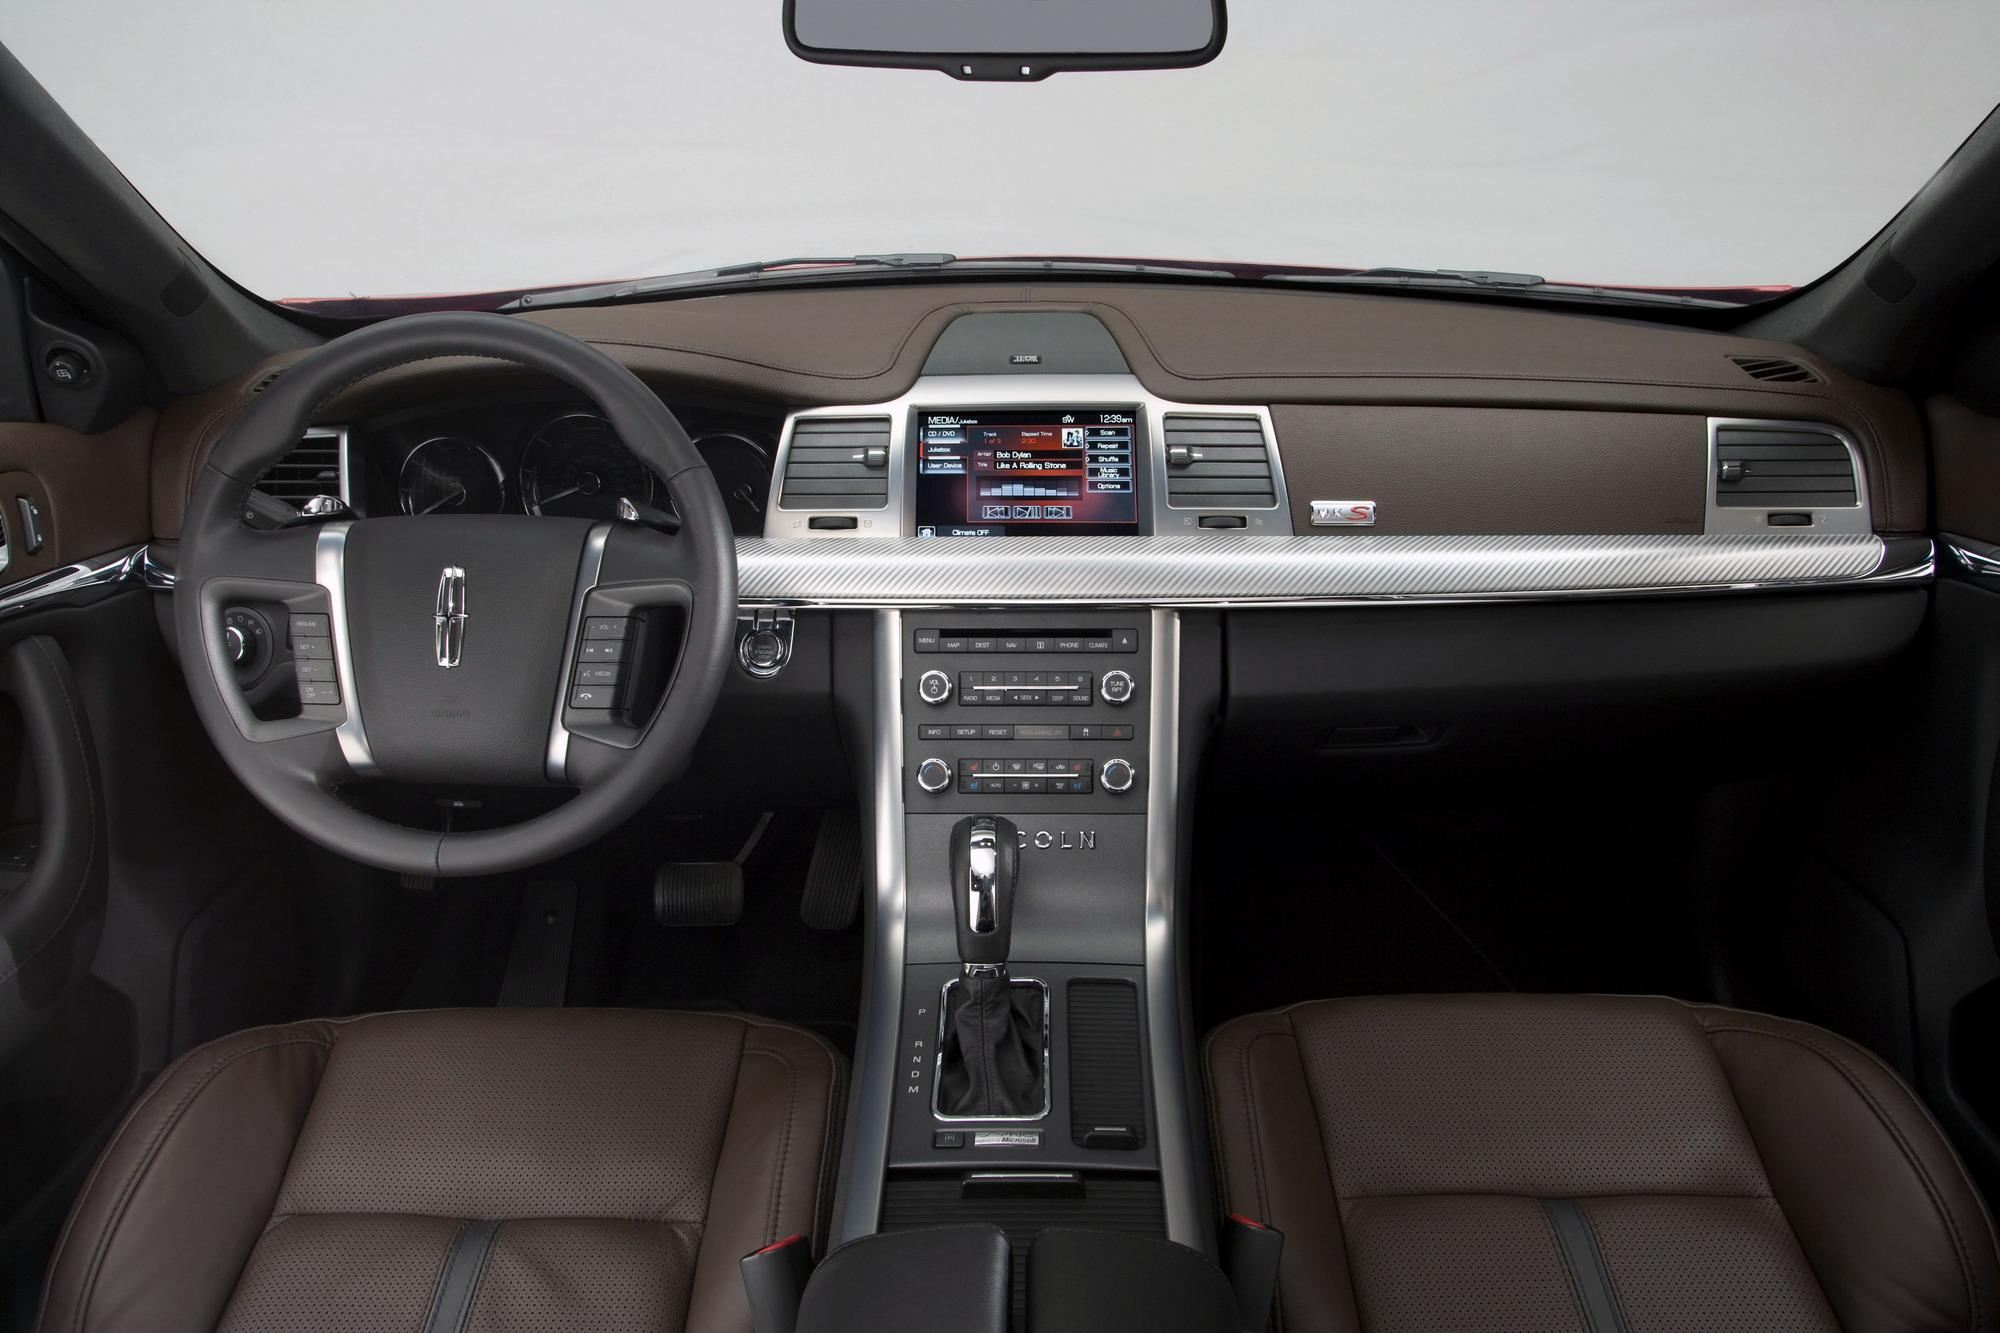 mks road review rear reality lincolnmks lincoln